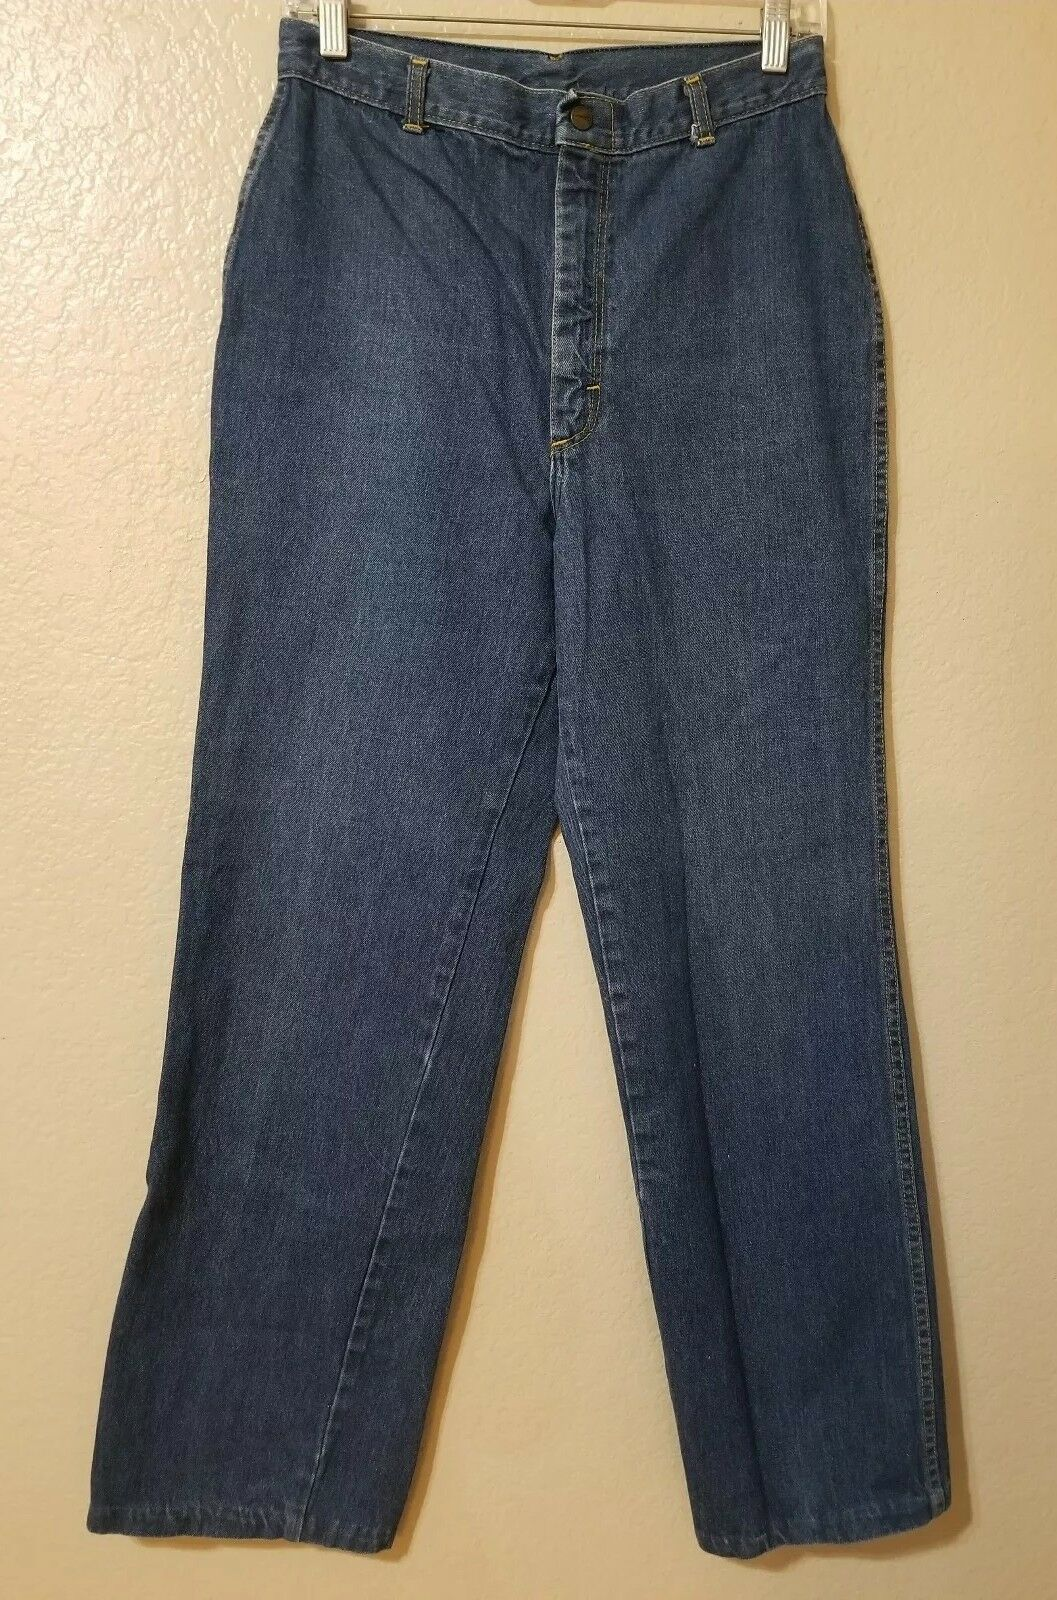 70s Women's pinkrio Jeans Size 14 High Rise Waist Wide Leg Vintage Embroidered